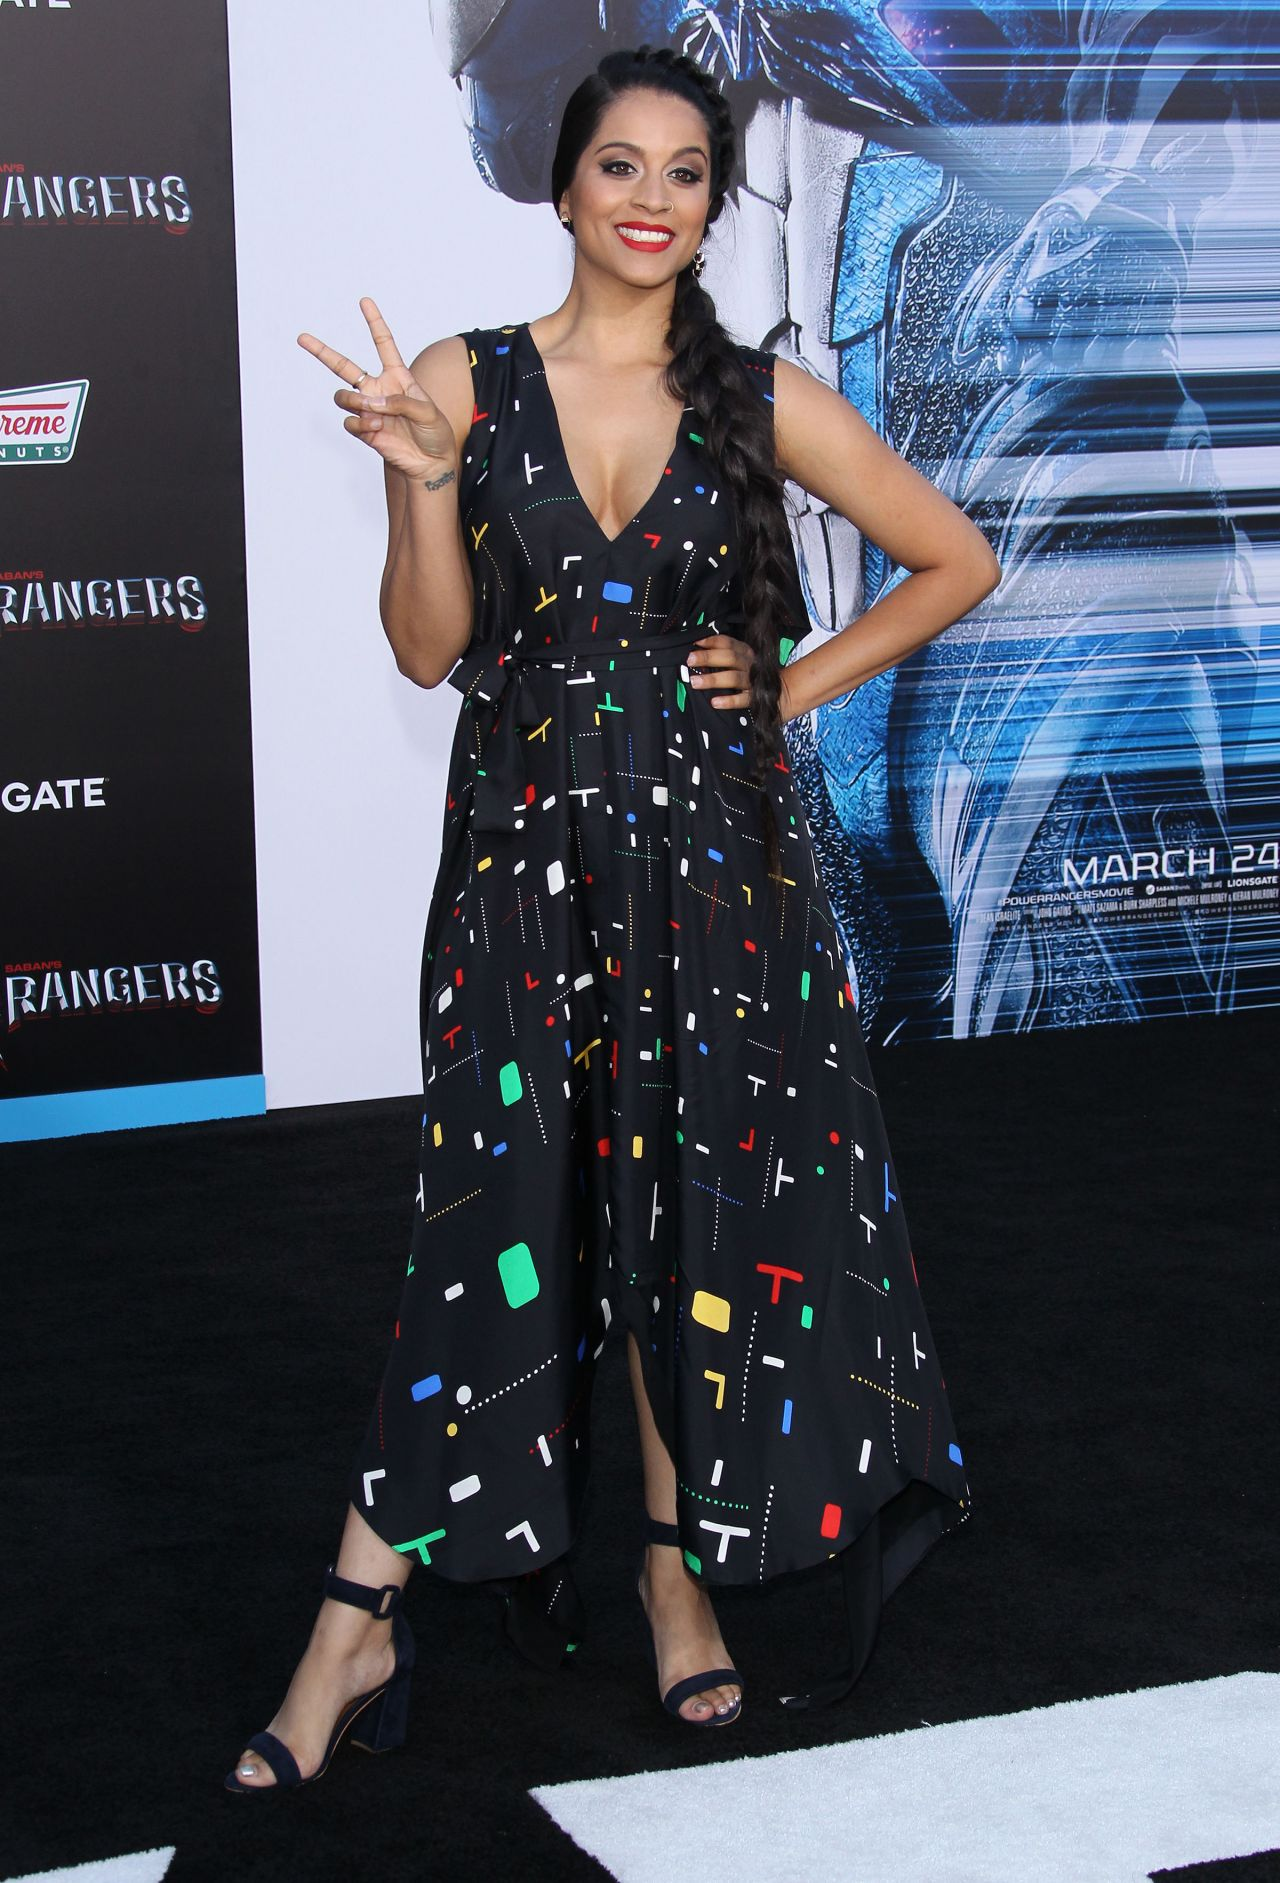 Lilly Singh Power Rangers Premiere In Los Angeles 3 22